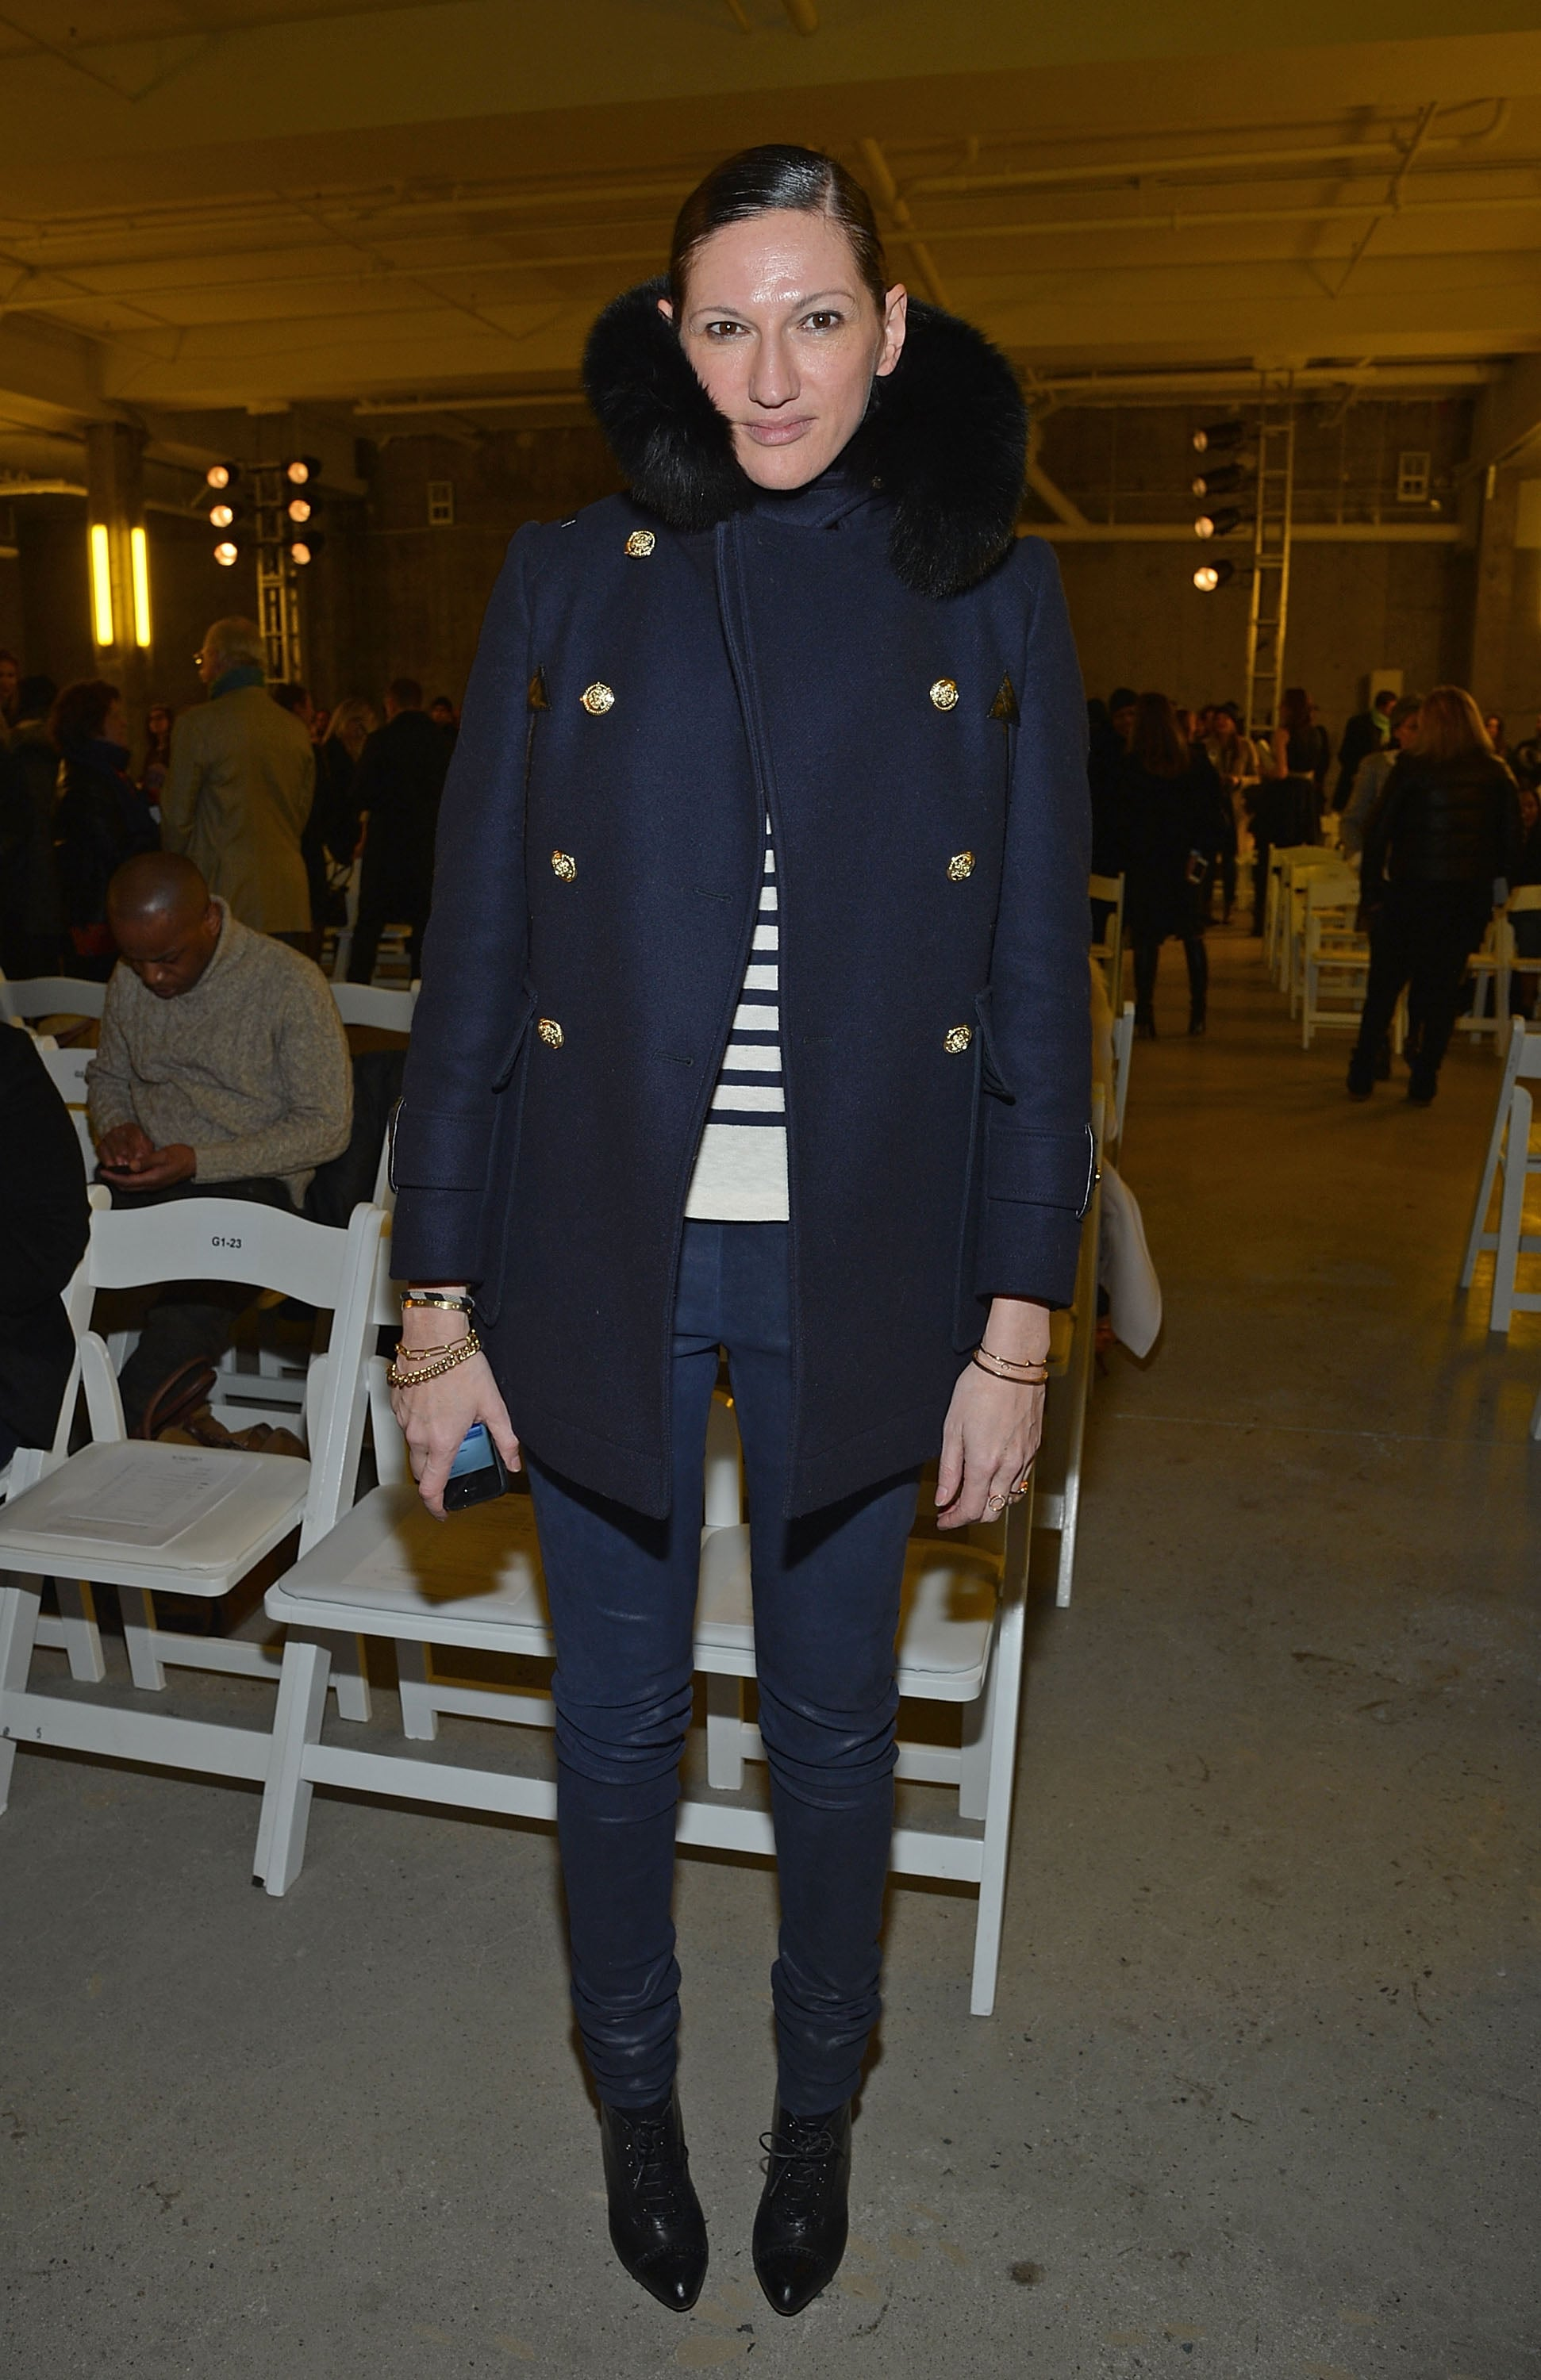 Straight-up preppy works, too, like this navy coat (and striped tee!).